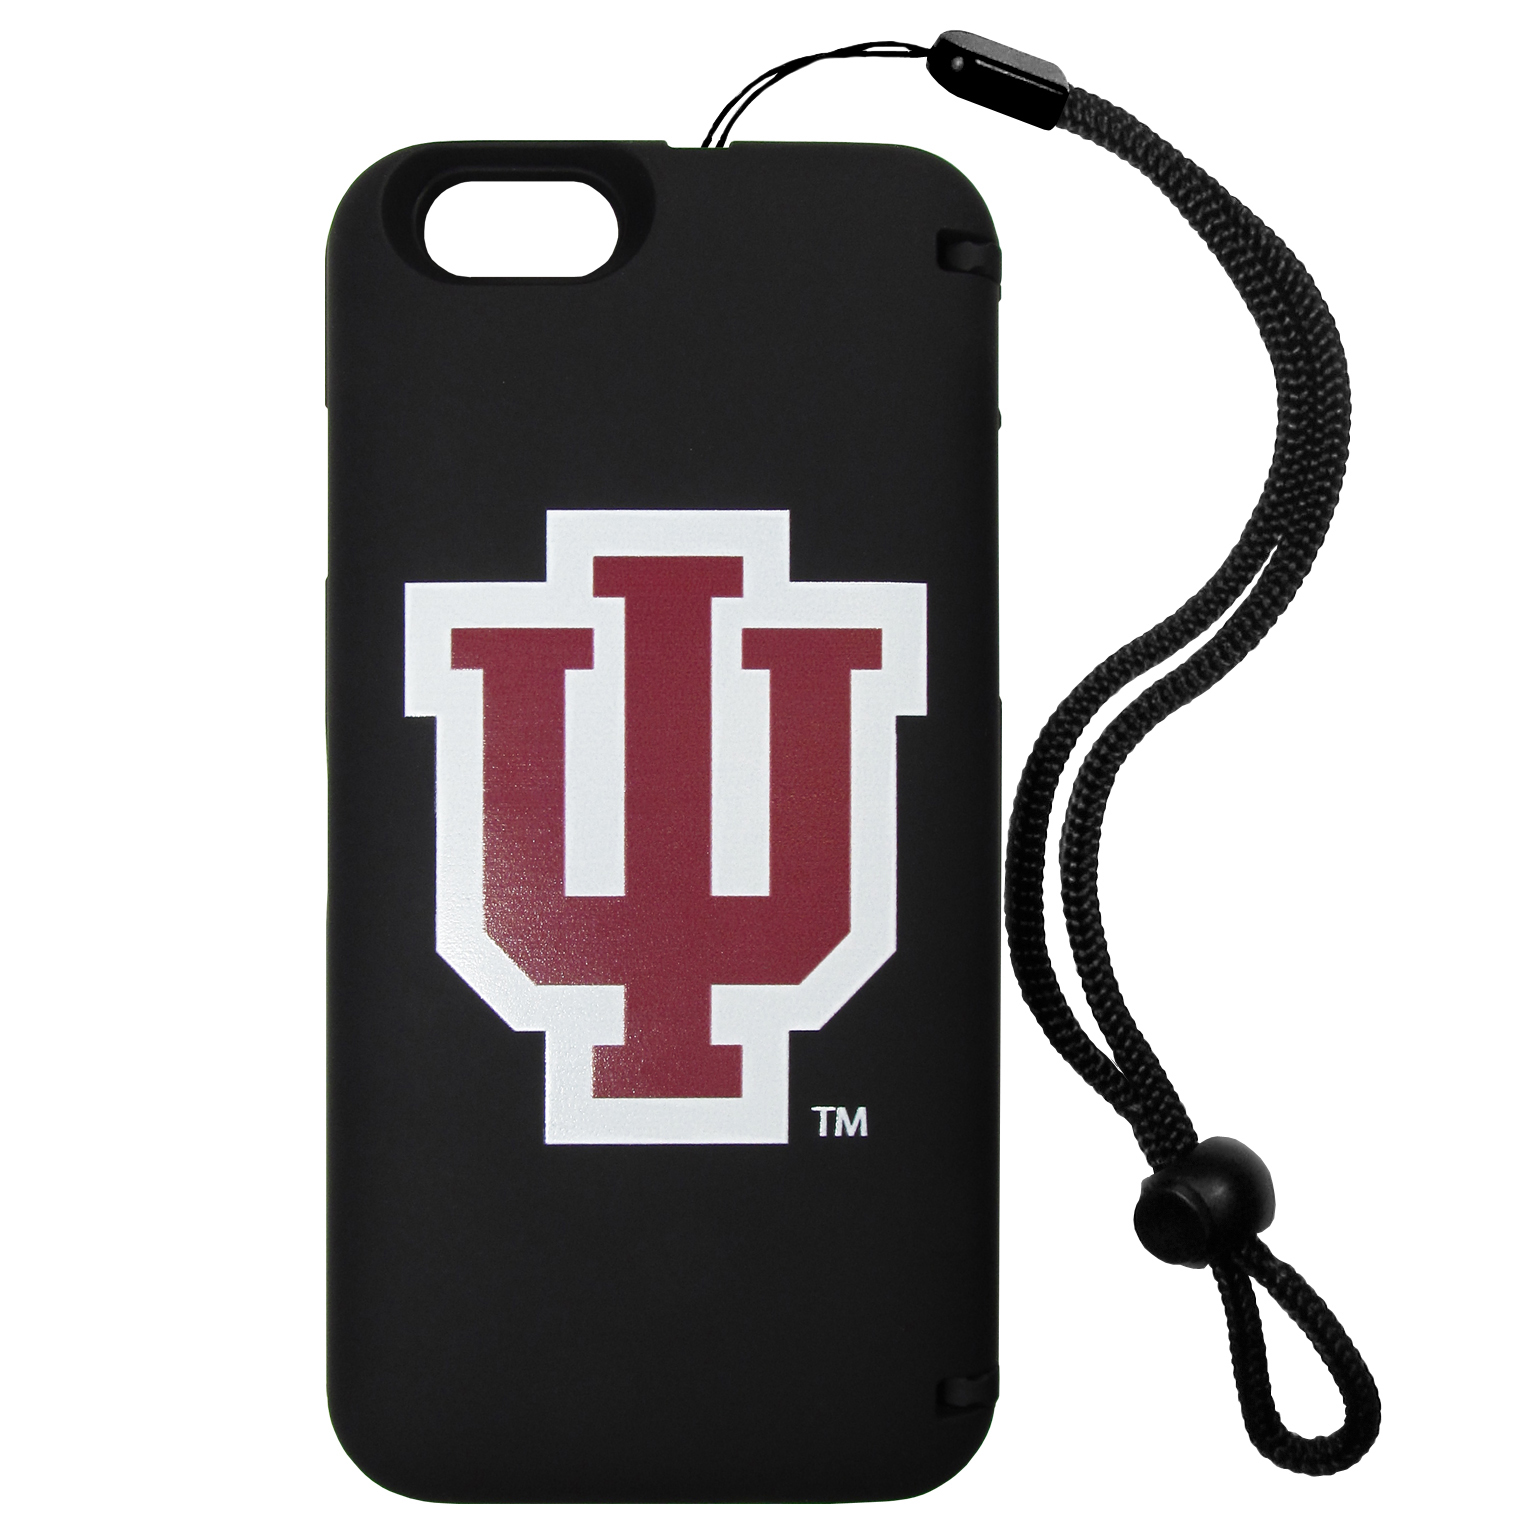 Indiana Hoosiers iPhone 6 Everything Case - This case really does have everything but the kitchen sink! The hidden compartment lets you keep your cards, money and tickets to the big game safe and secure and has a compact mirror so you can make sure your game face is ready to go. It also comes with a kickstand to make chatting and watching videos a breeze. The wrist strap allows you to travel with ease with your everything case. If that's not enough, it also comes with the Indiana Hoosiers logo printed in expert detail on the front.